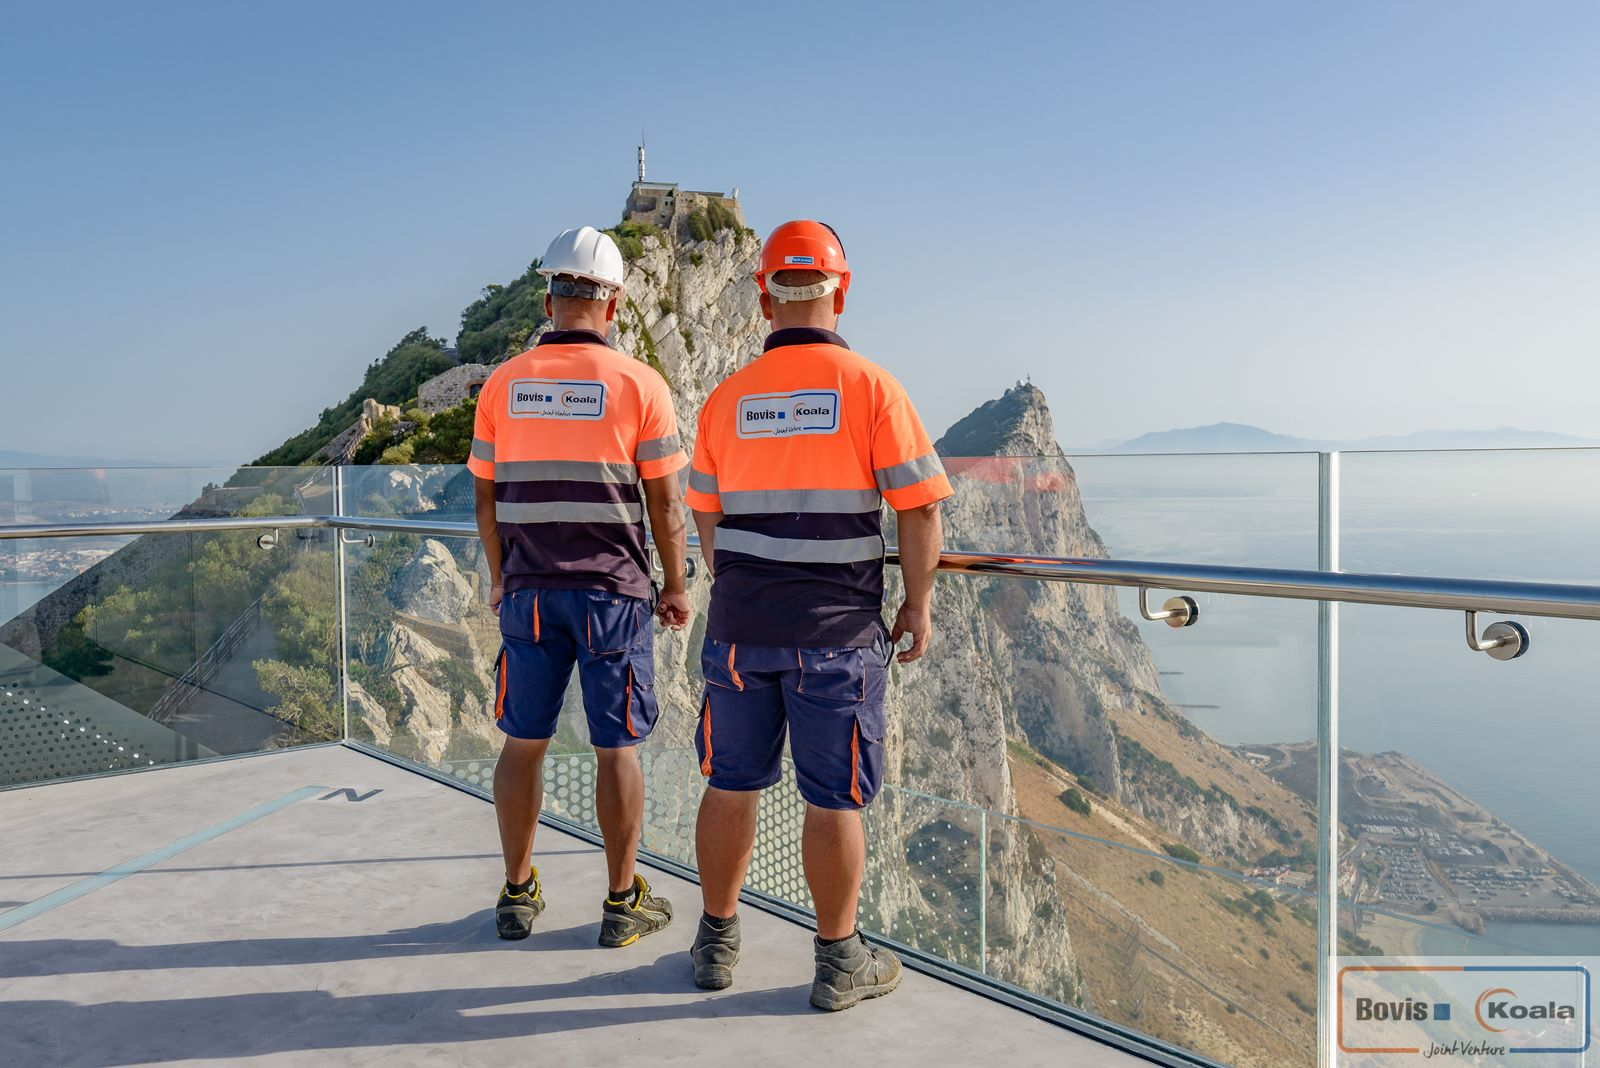 Bovis Koala Skywalk Gibraltar 21